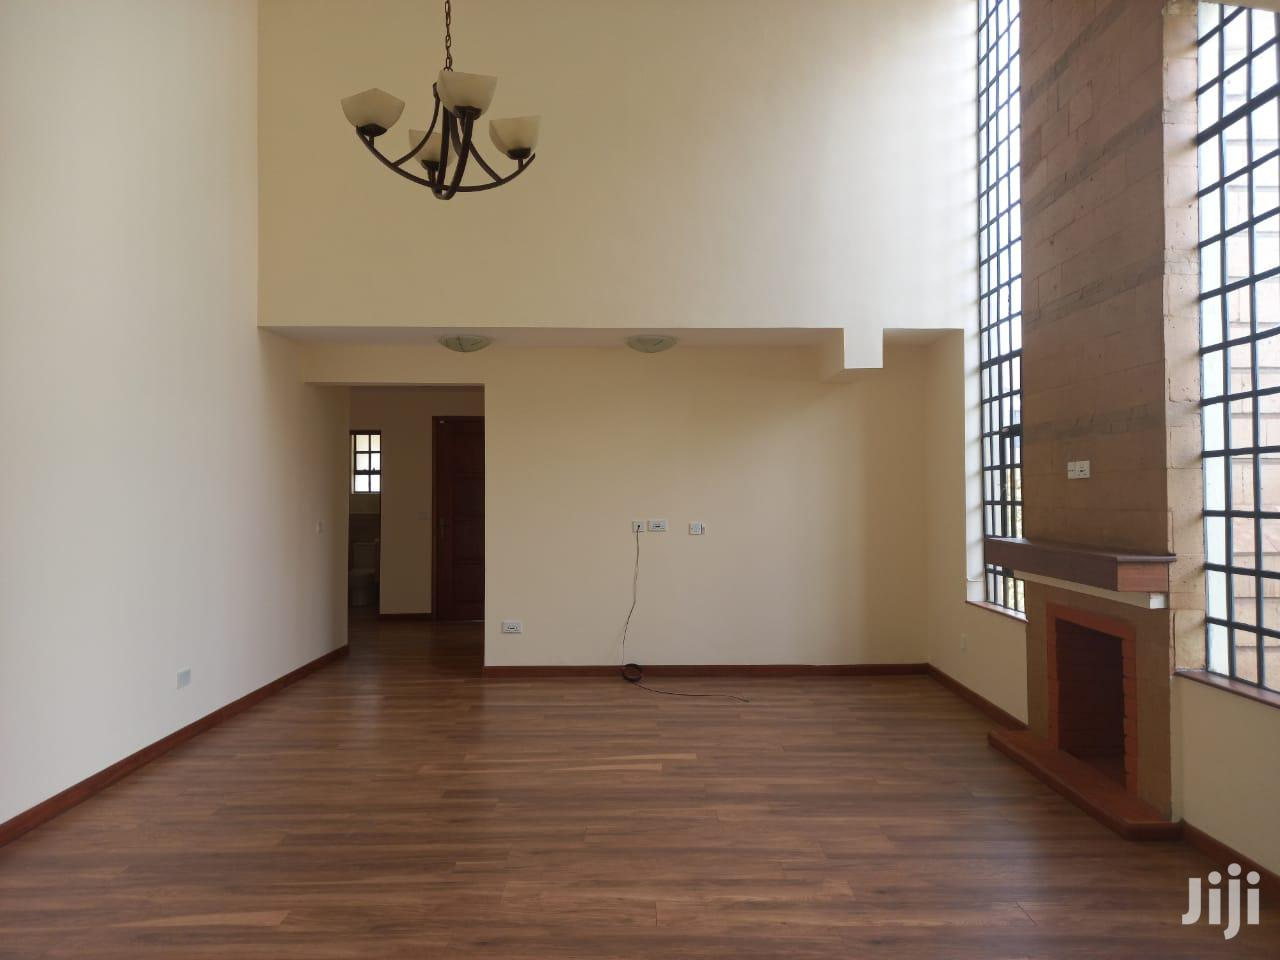 4 Bedroom All Ensuite House at Kitisuru in a Gated Community | Houses & Apartments For Sale for sale in Kitisuru, Nairobi, Kenya